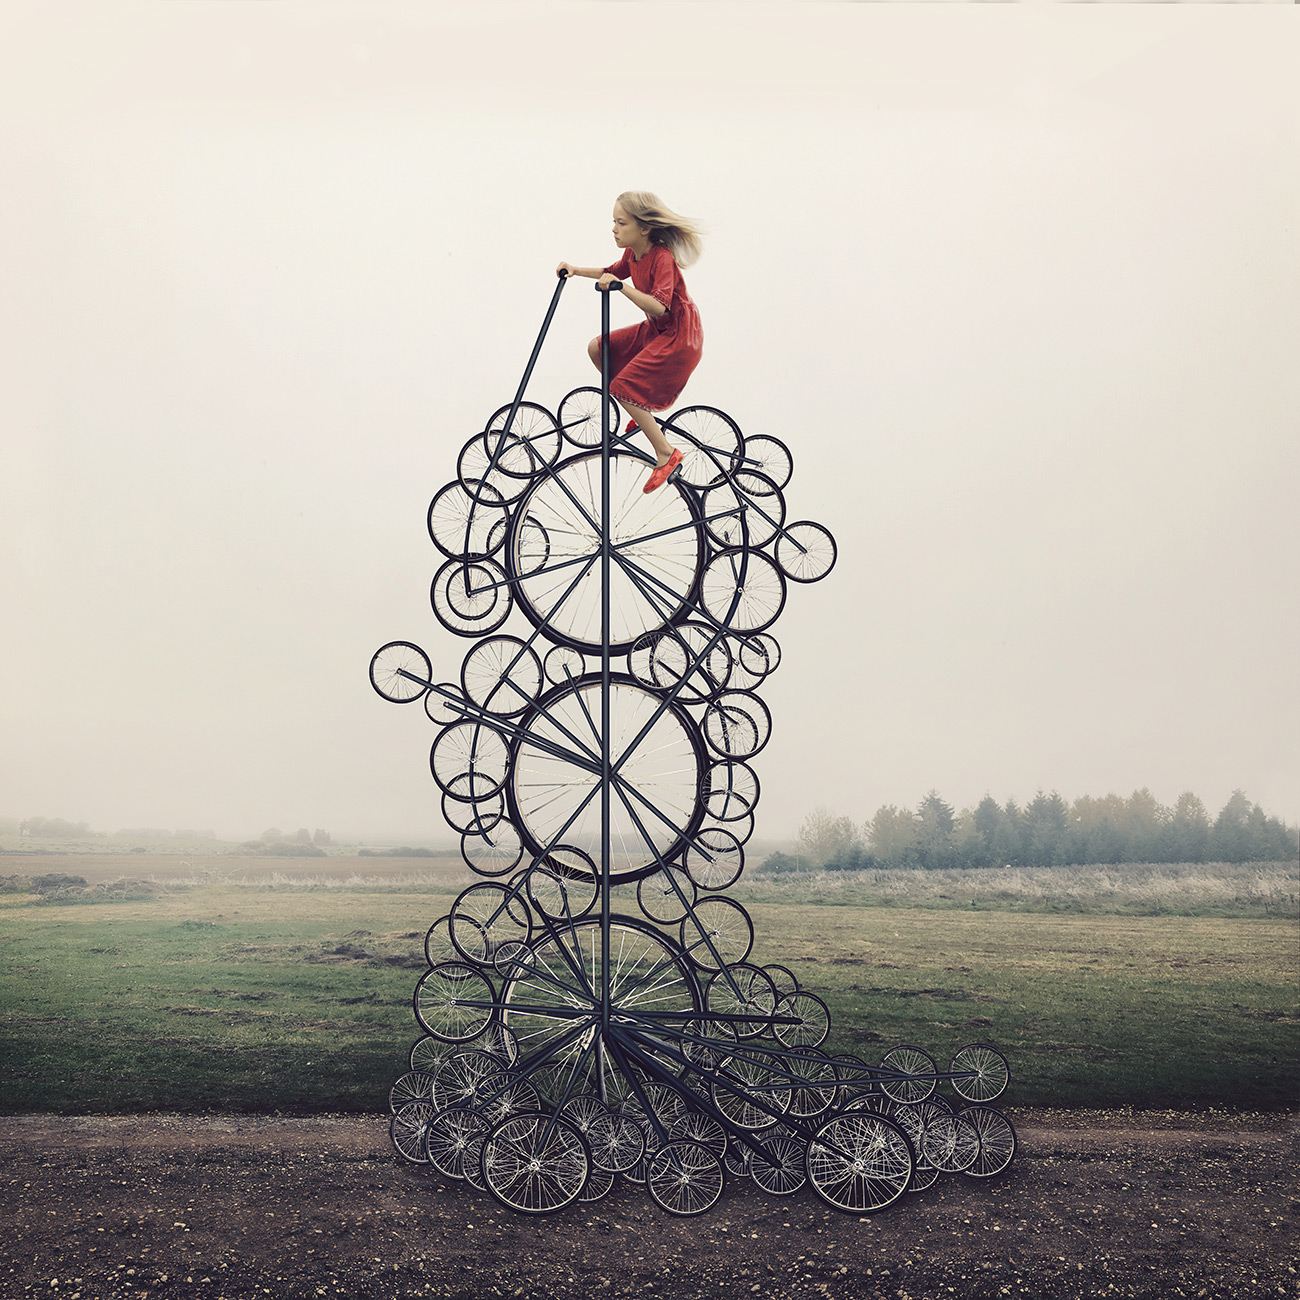 Women in Motion Energize Dreamy Photographs by Kylli Sparre